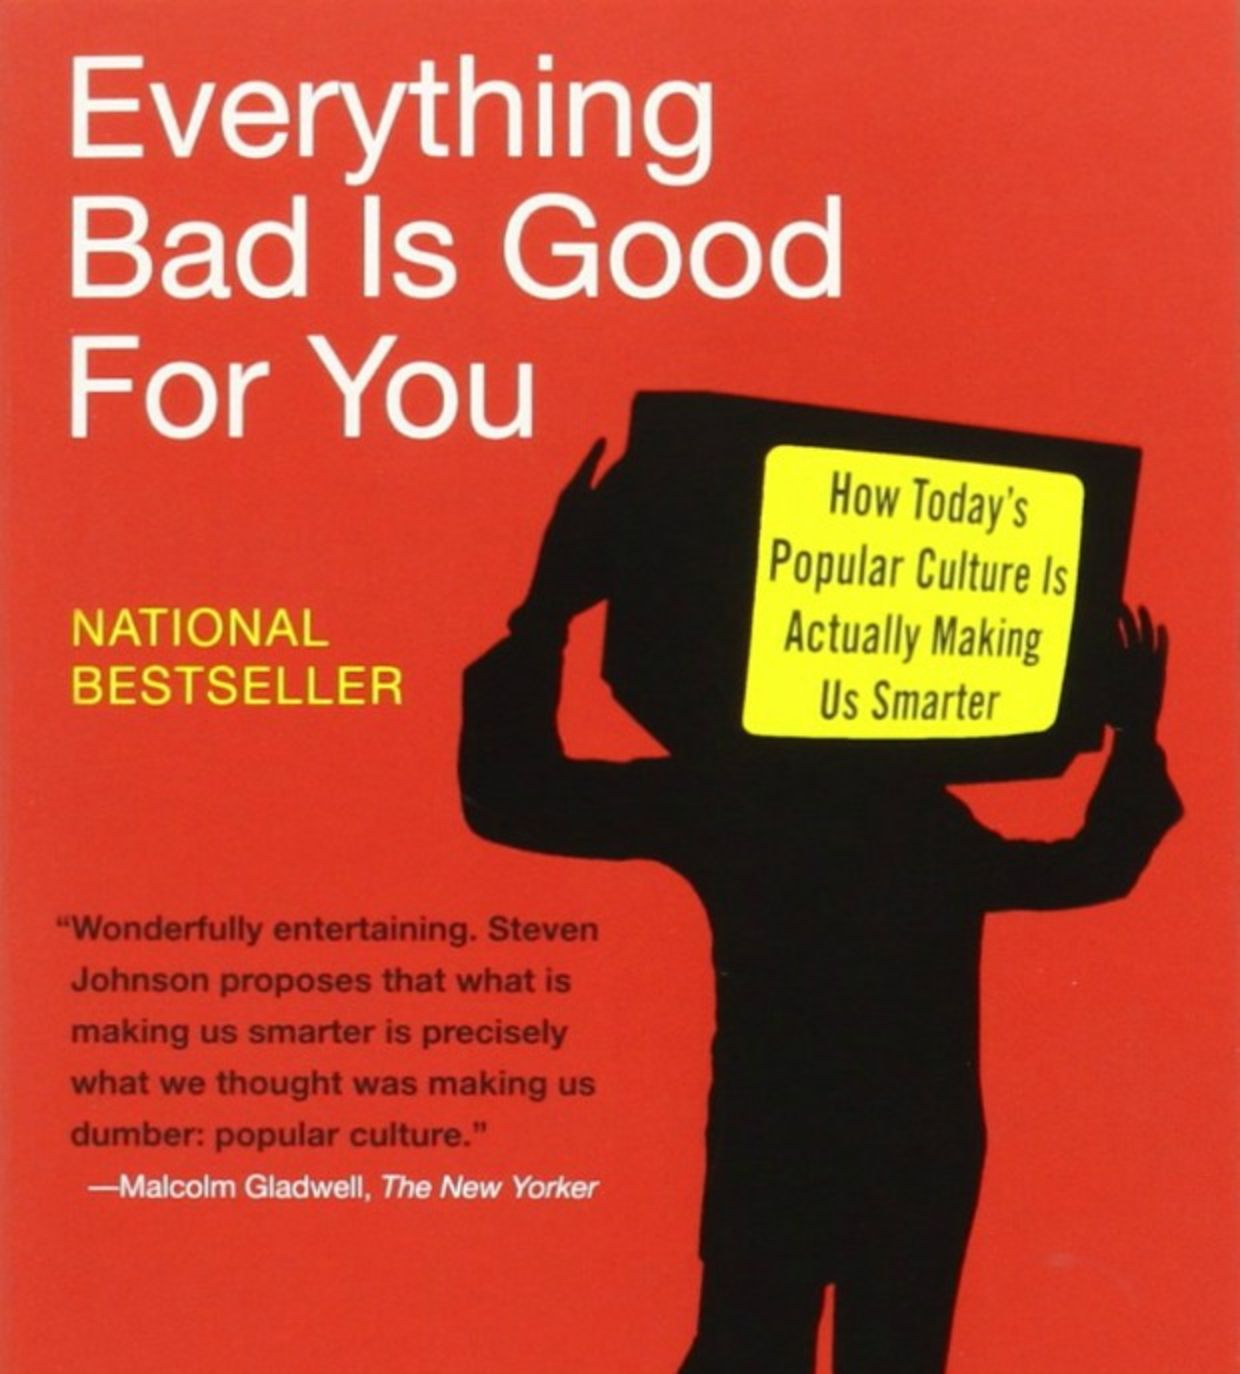 """the smarter generation in everything bad is good for you by steven johnson E-learning (2004), steven johnson's everything bad is good for you: how today's popular culture is actually making us smarter (2005), prensky's new book """"don't bother me, mom, i'm learning"""": how computer and video games are preparing your kids for 21st century success and how you can."""